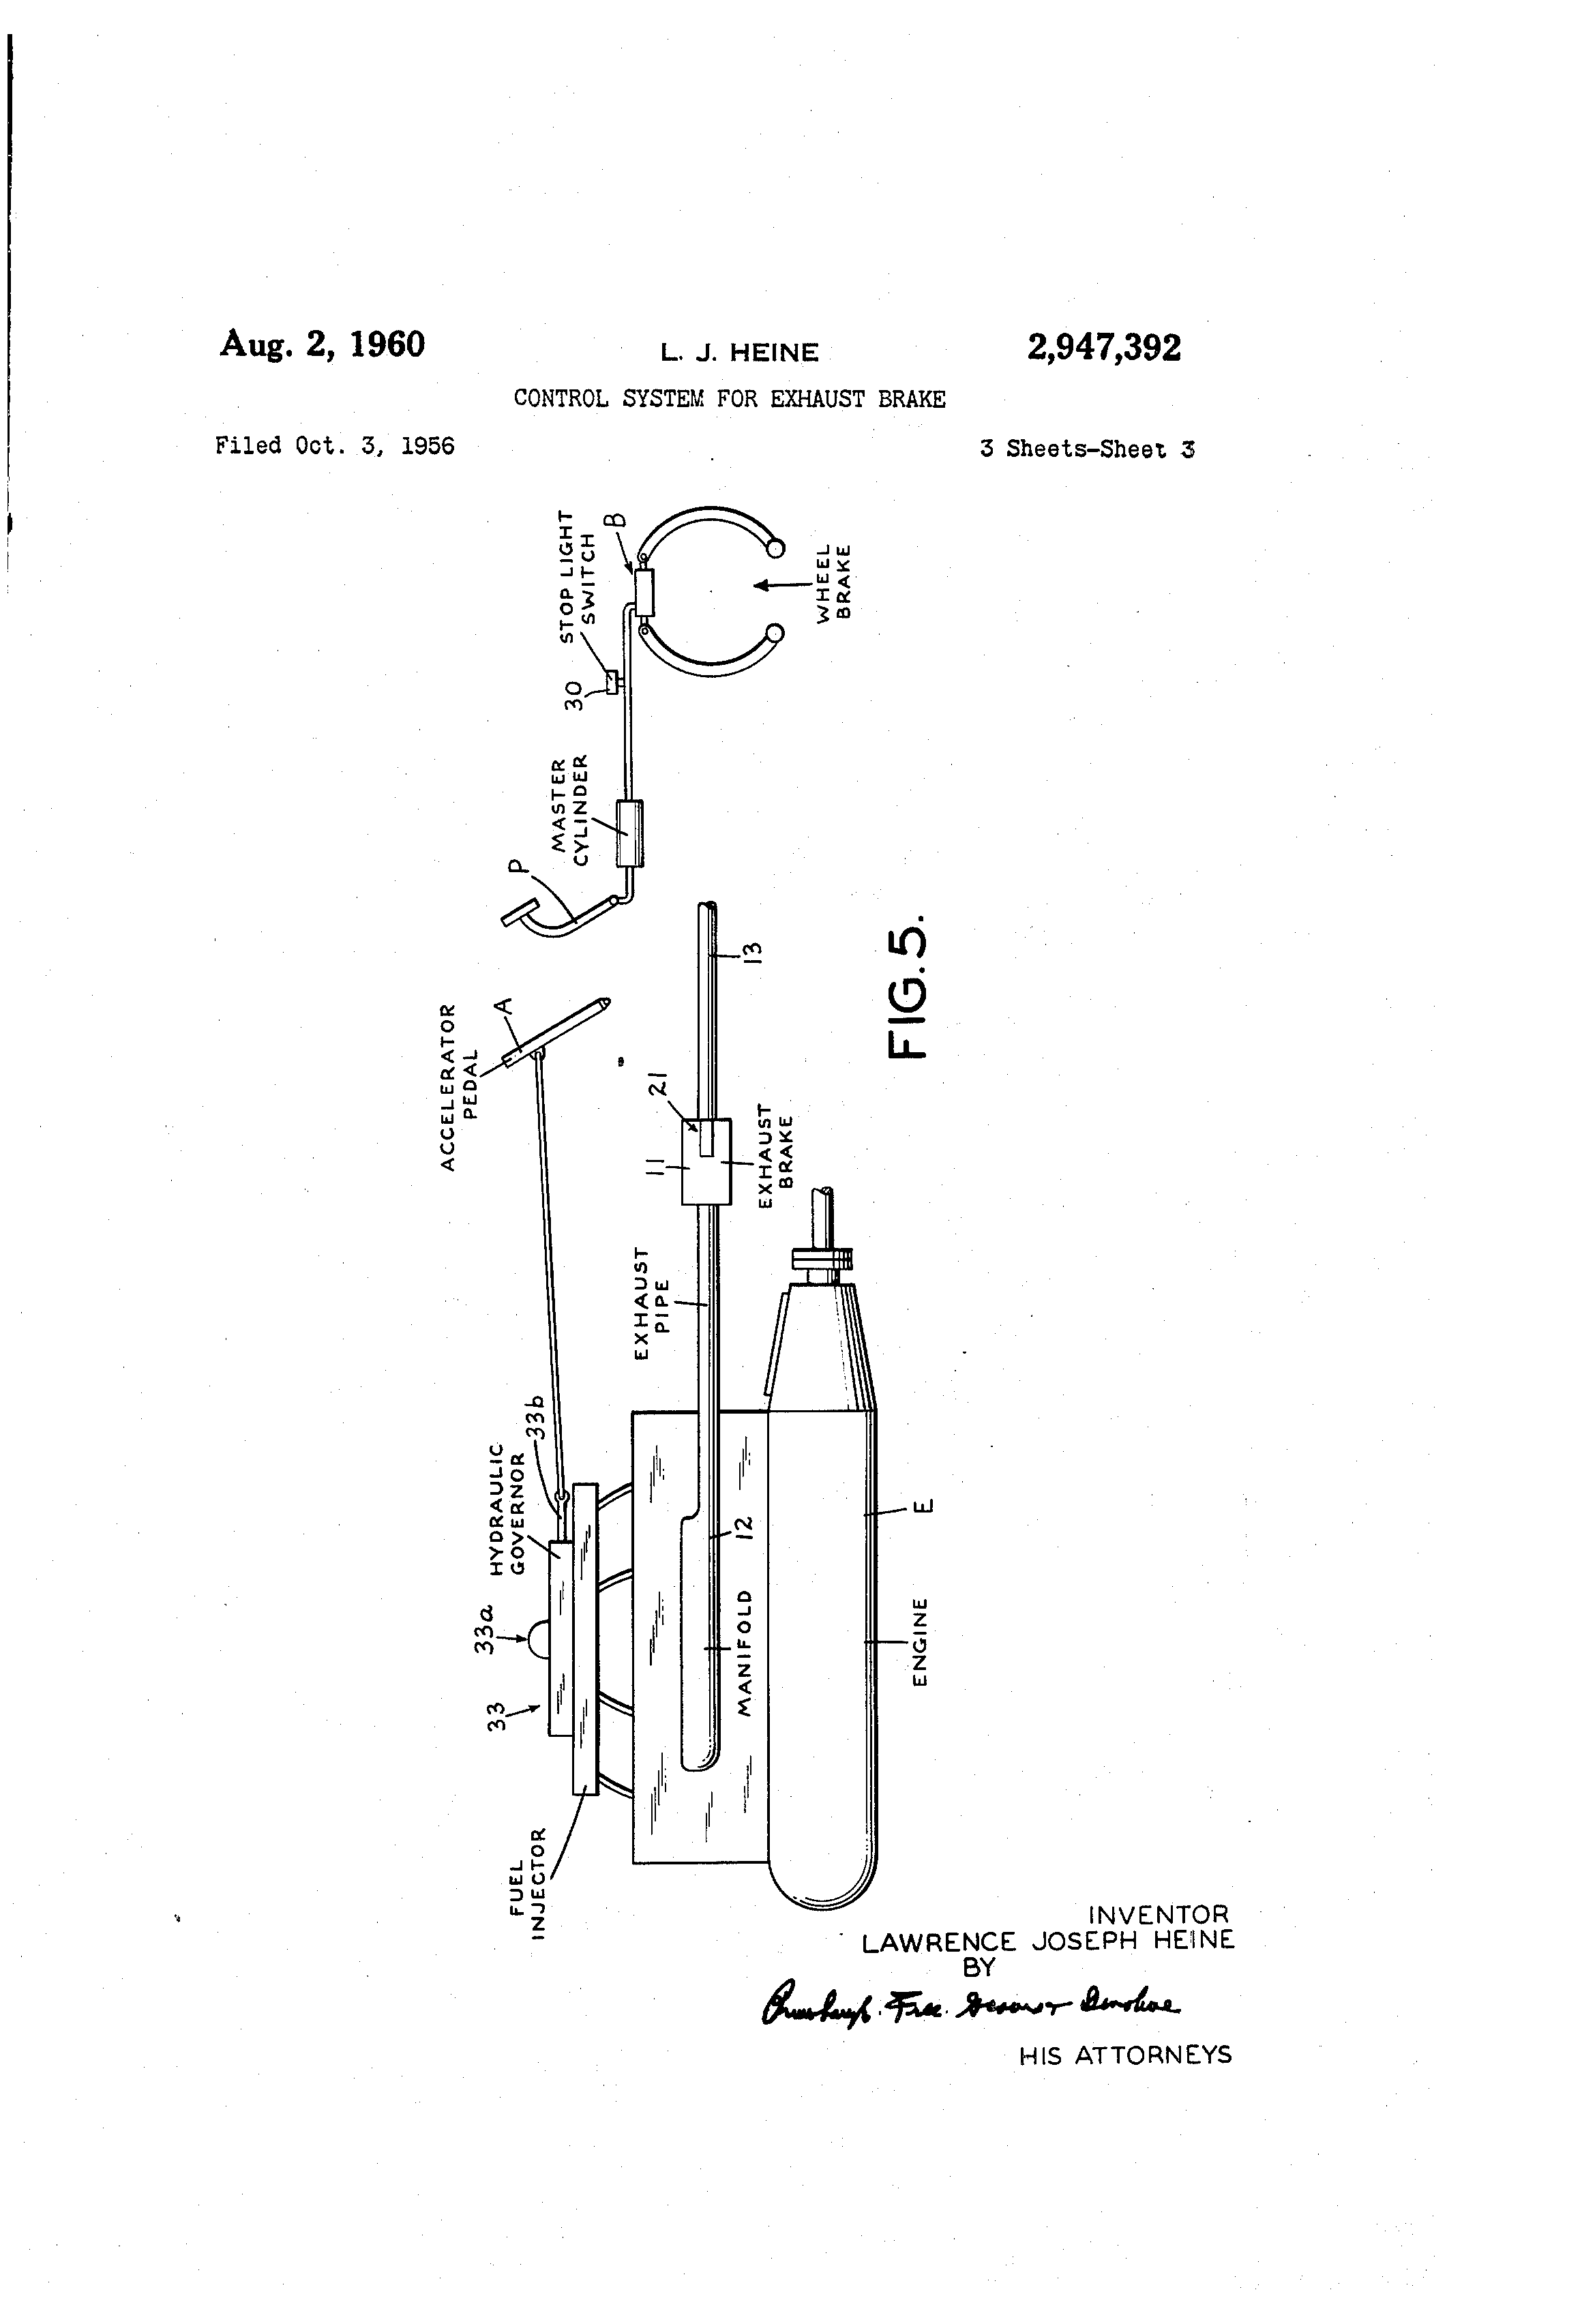 patent us2947392 - control system for exhaust brake